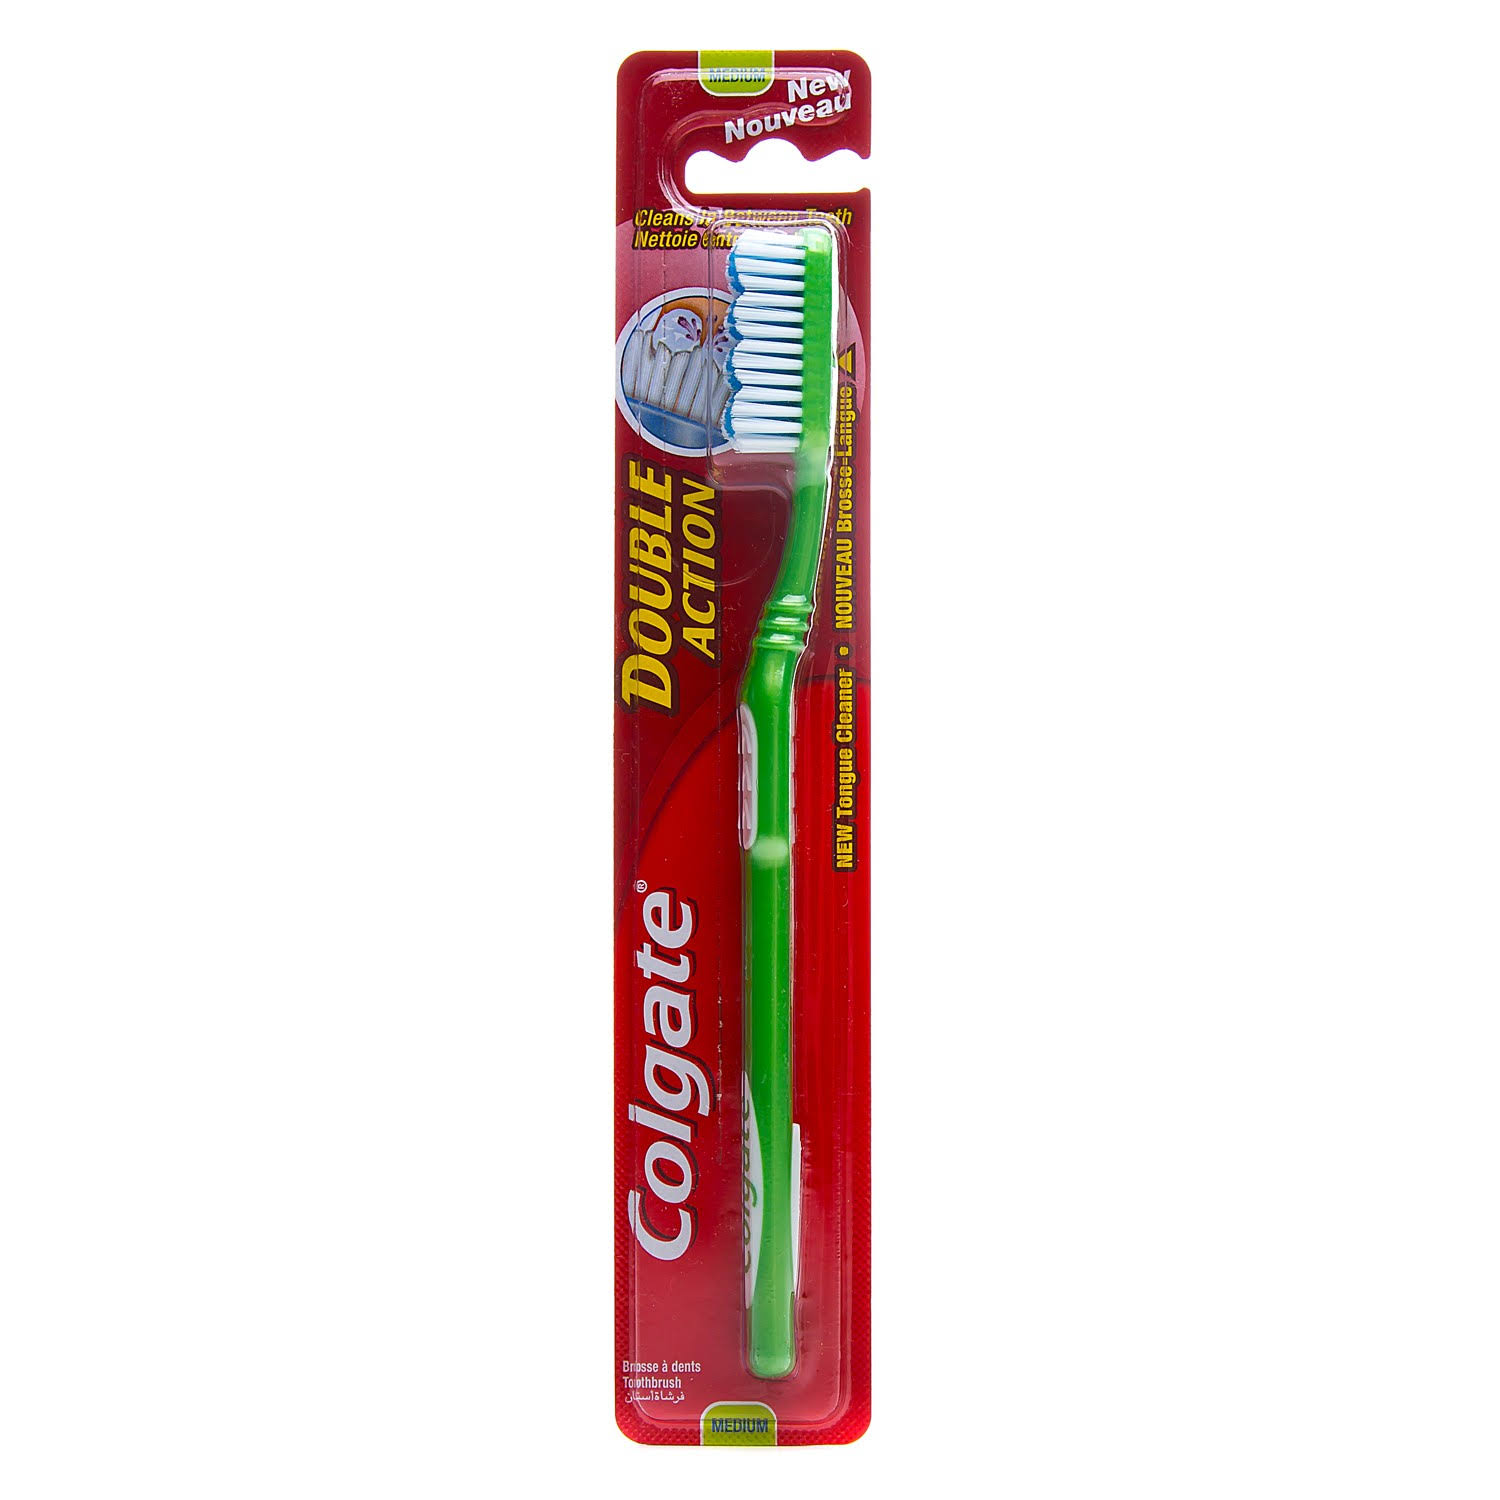 Colgate Double Action Adult Toothbrush